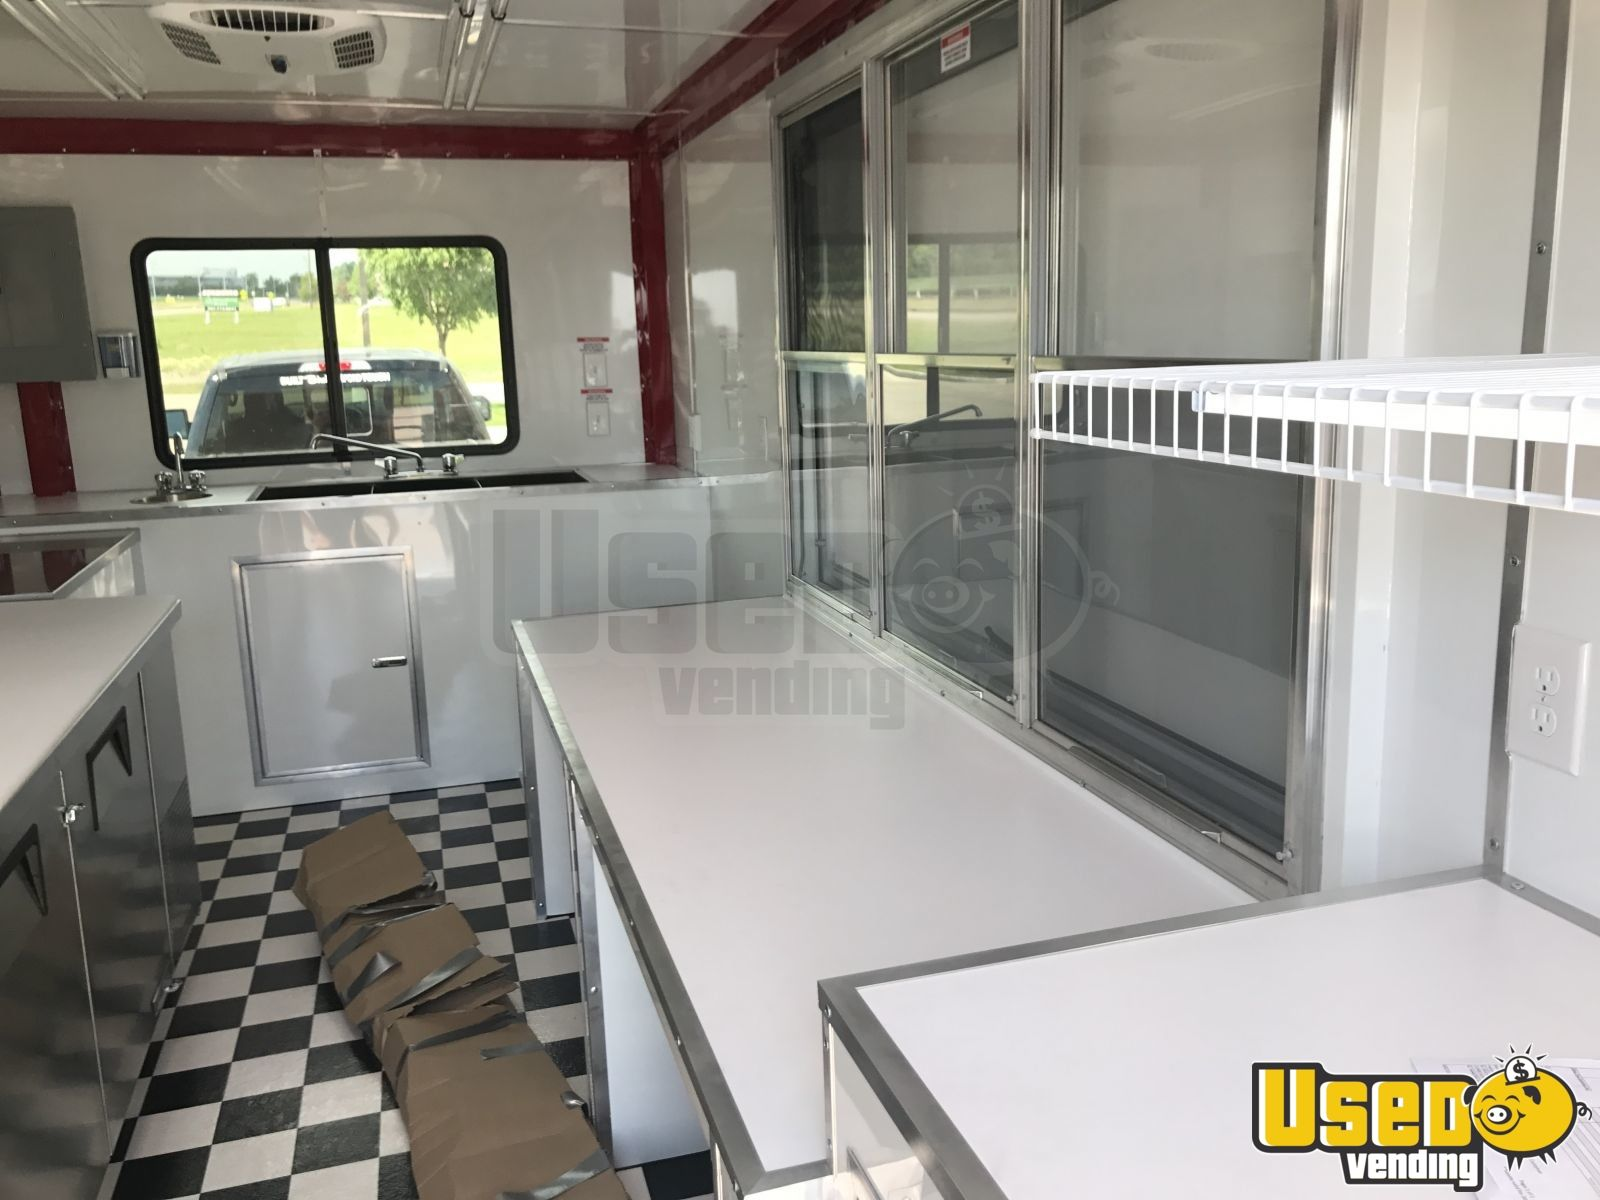 2017 Pizza Trailer Spare Tire Vermont for Sale - 4